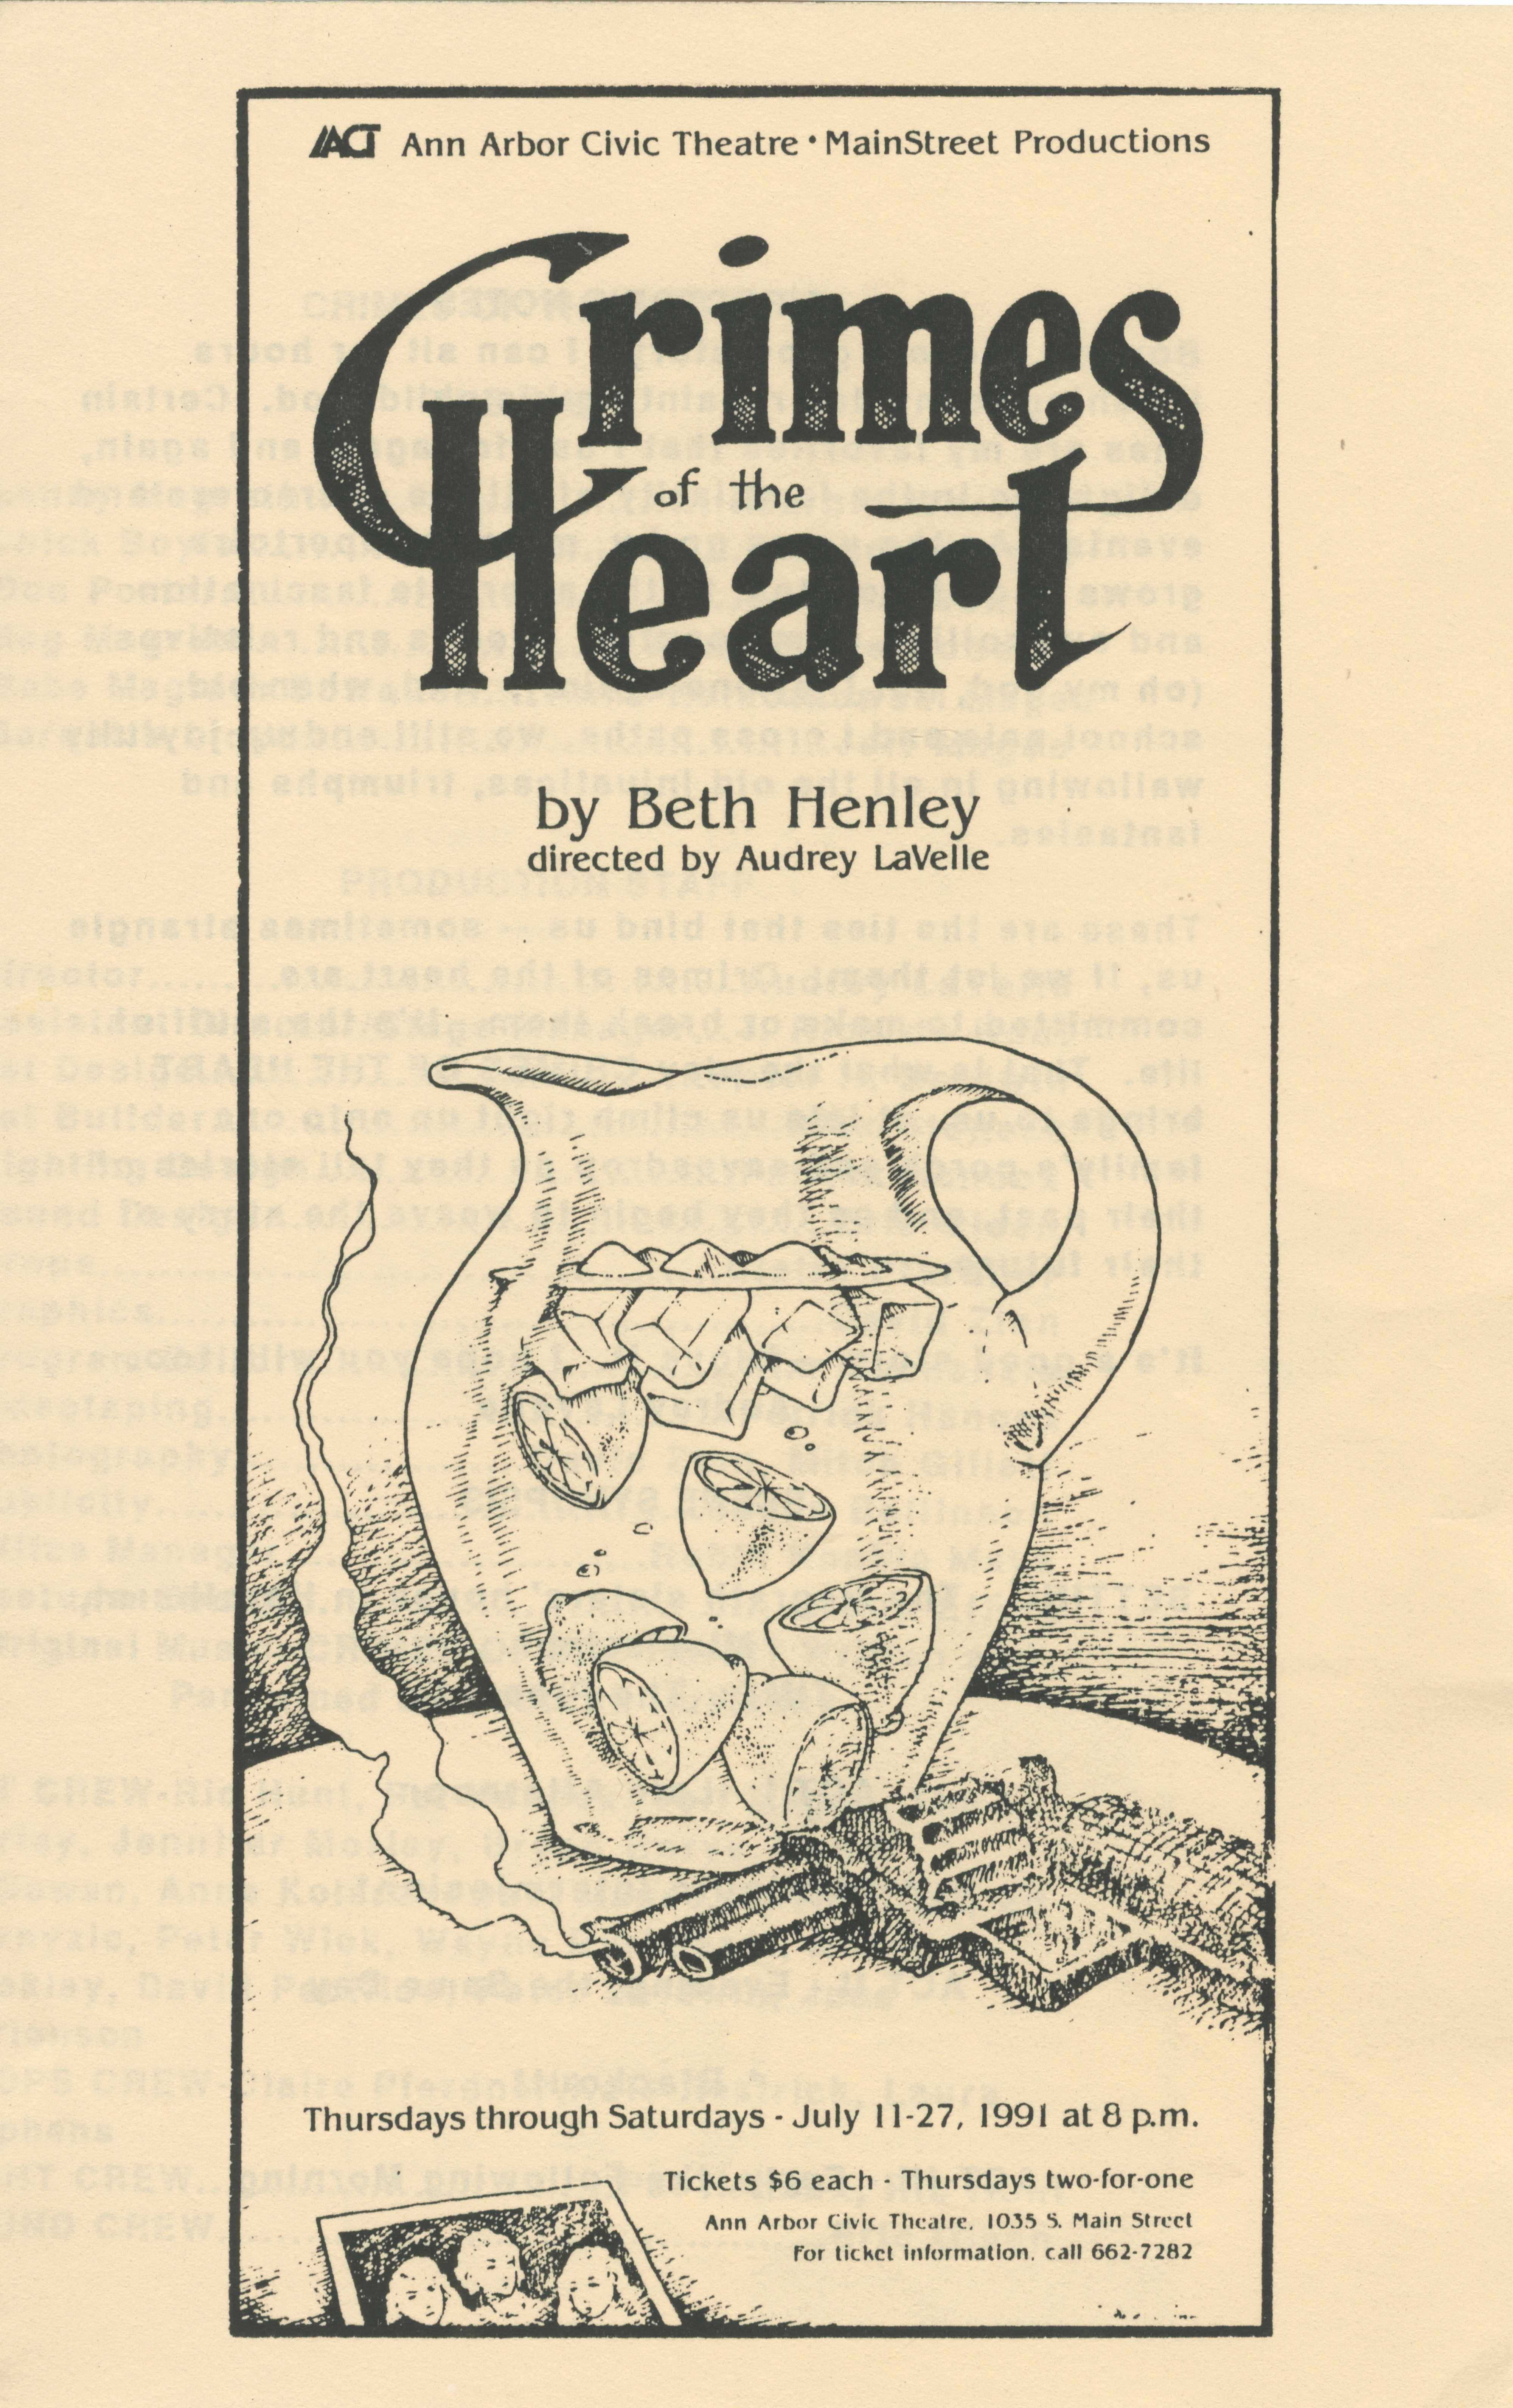 Ann Arbor Civic Theatre Program: Crimes of the Heart, July 11, 1991 image